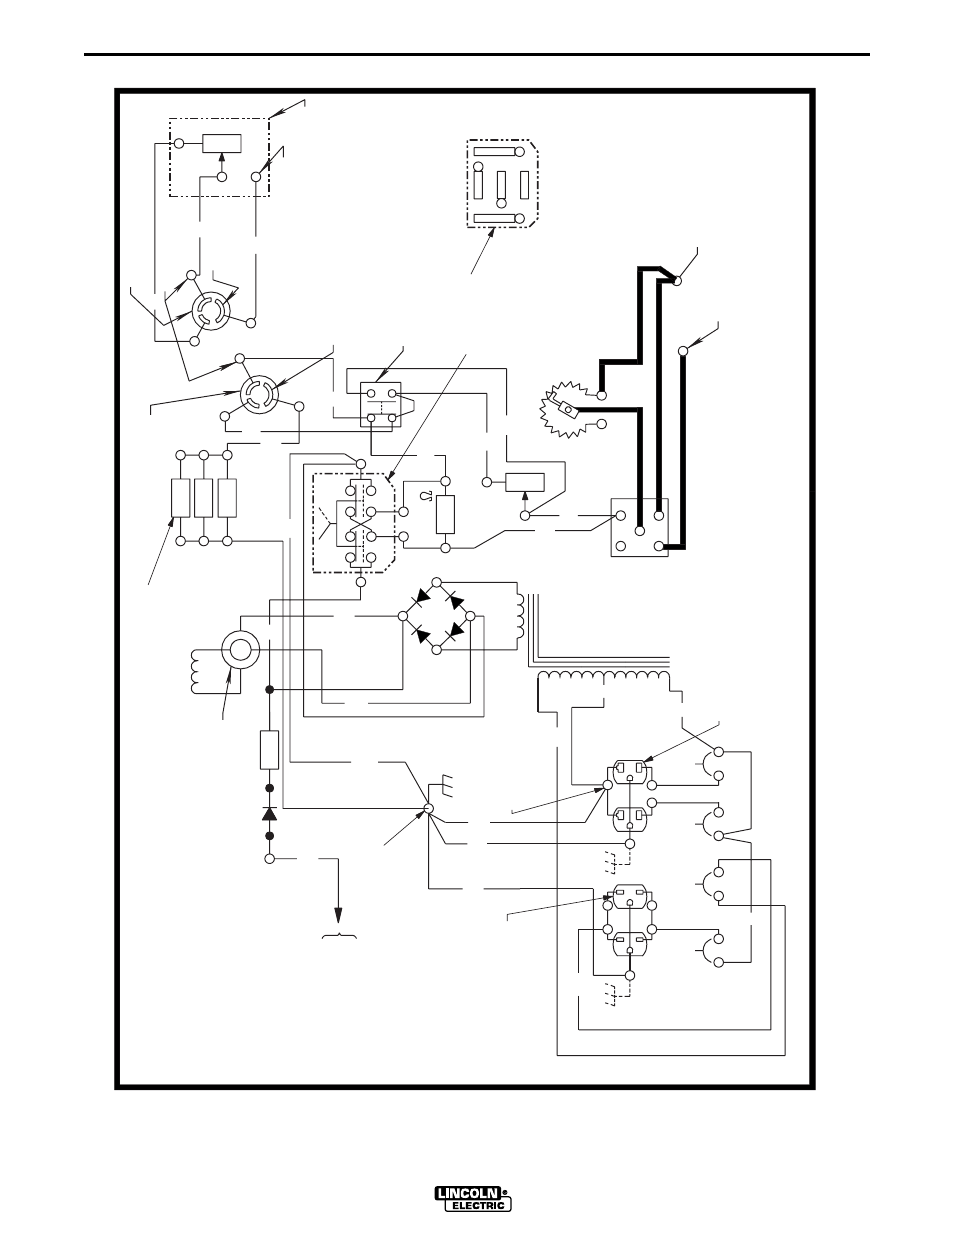 Craftsman Welder Wiring Diagram Library Duplex Outlets In Parallel Diagrams Sae400 Weldn Air Control Sae 400